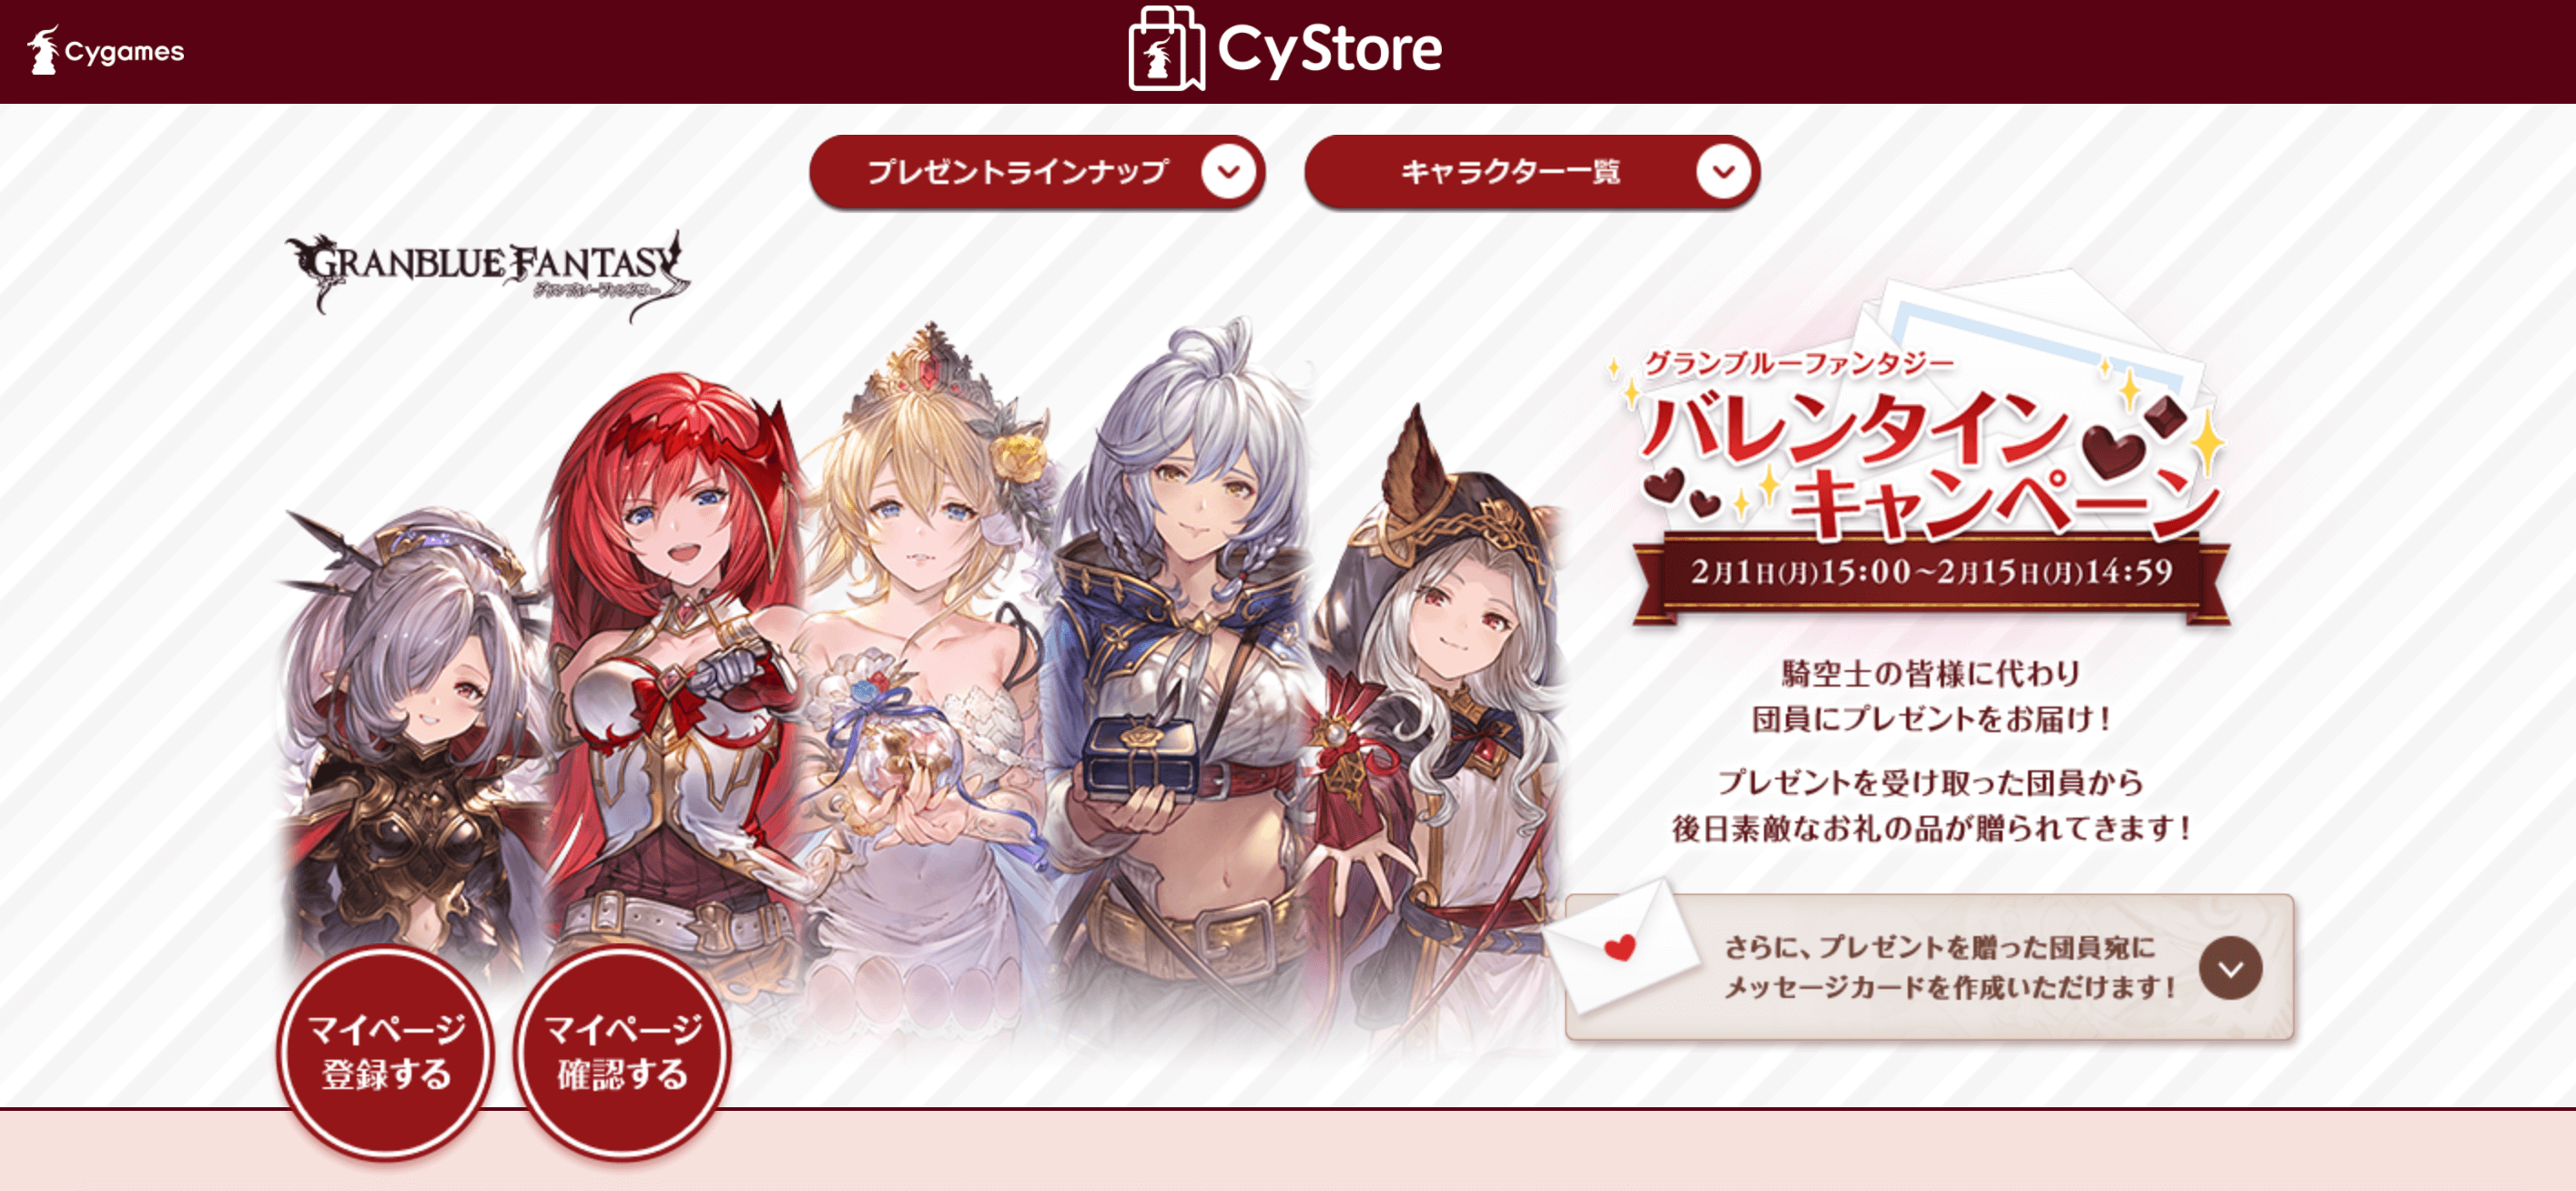 CyStores Valentine's Day Home Page